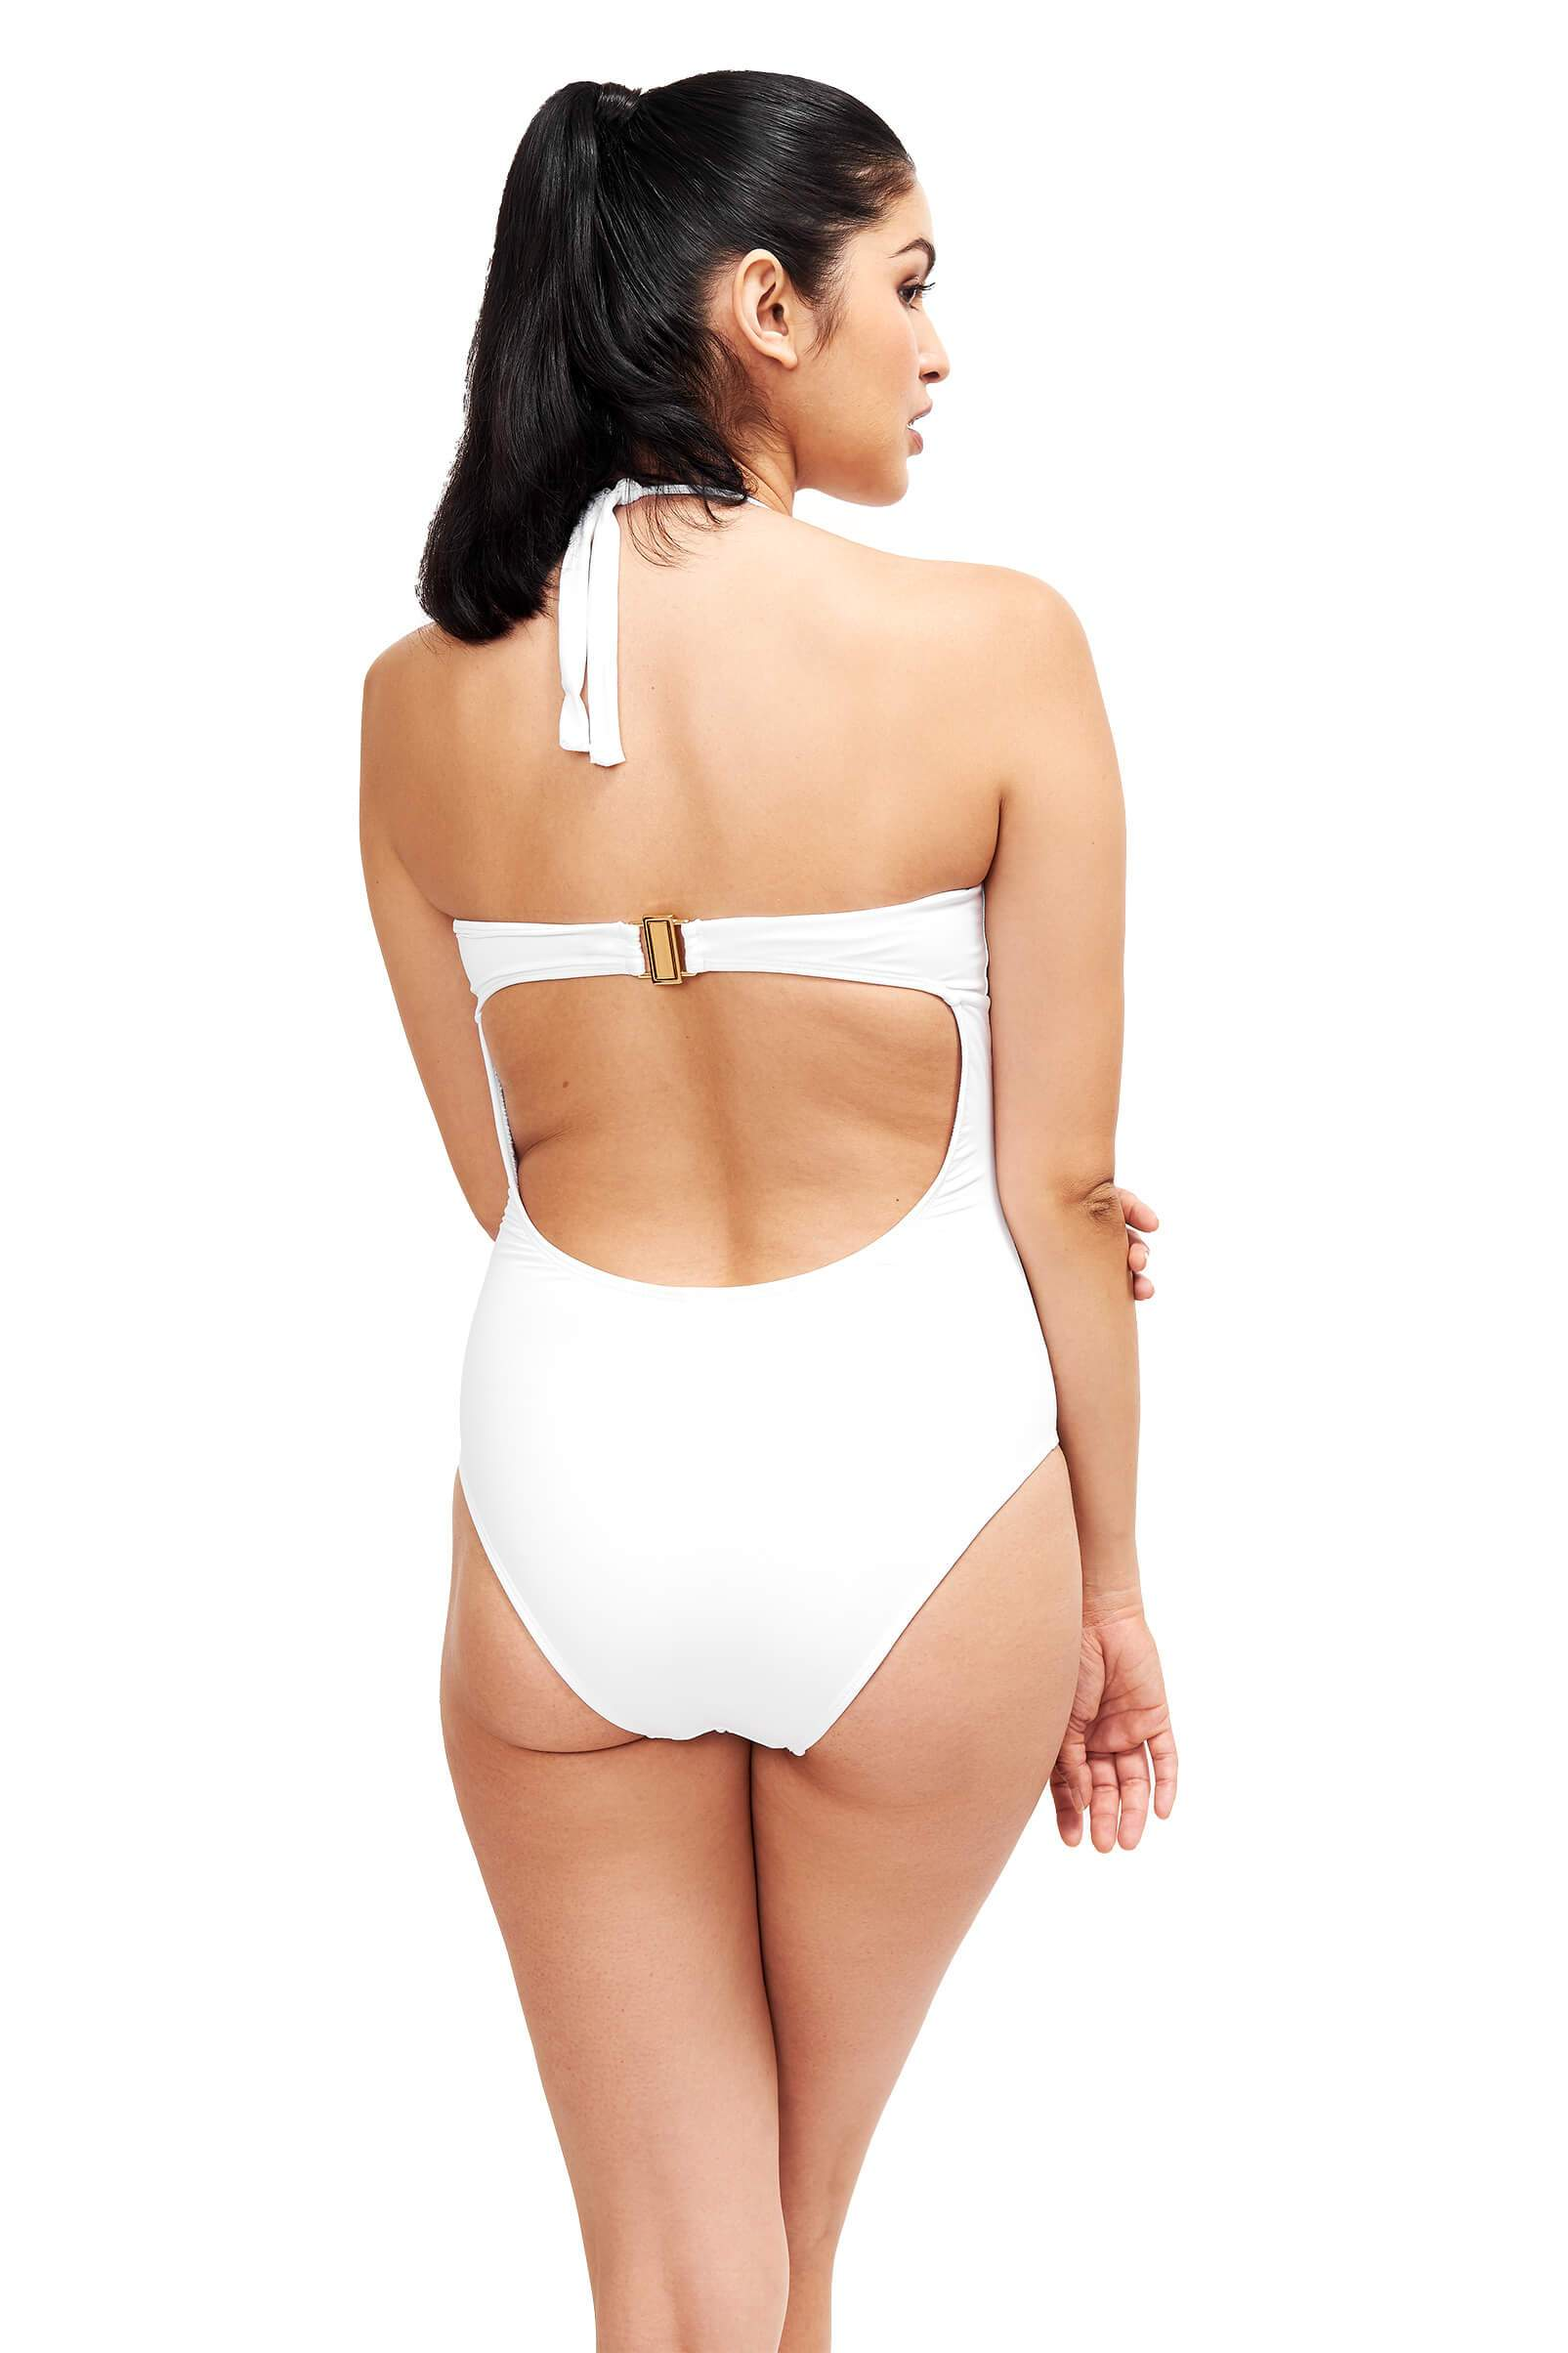 back of model wearing white one piece swim suit with open back and string tie at neck and strap across back